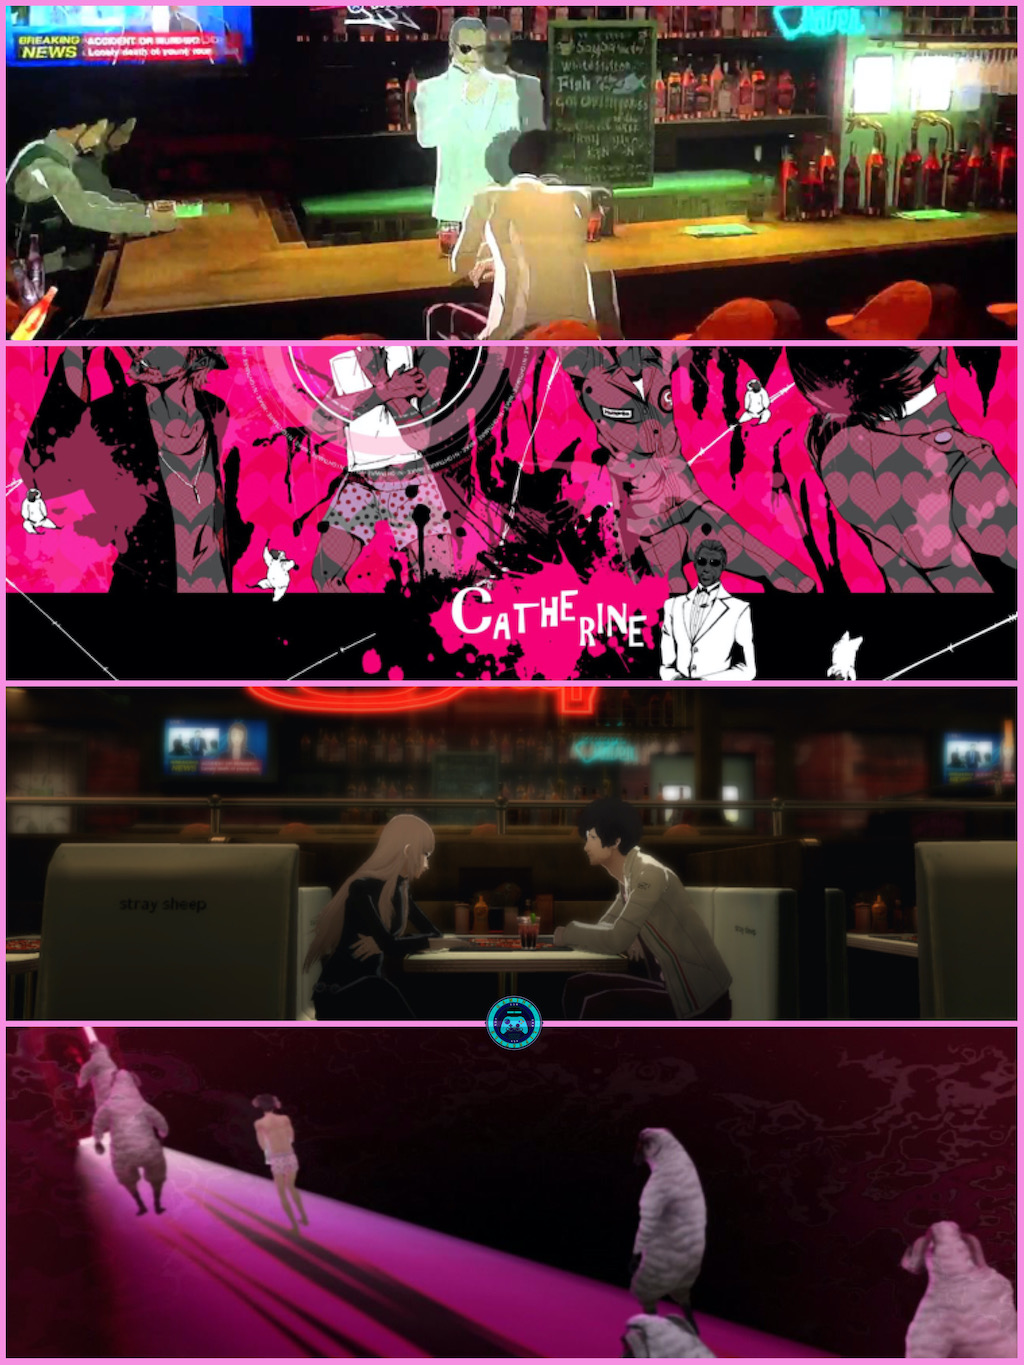 catherine-full-body-considerazioni-riflessioni-insta-thoughts-cinema